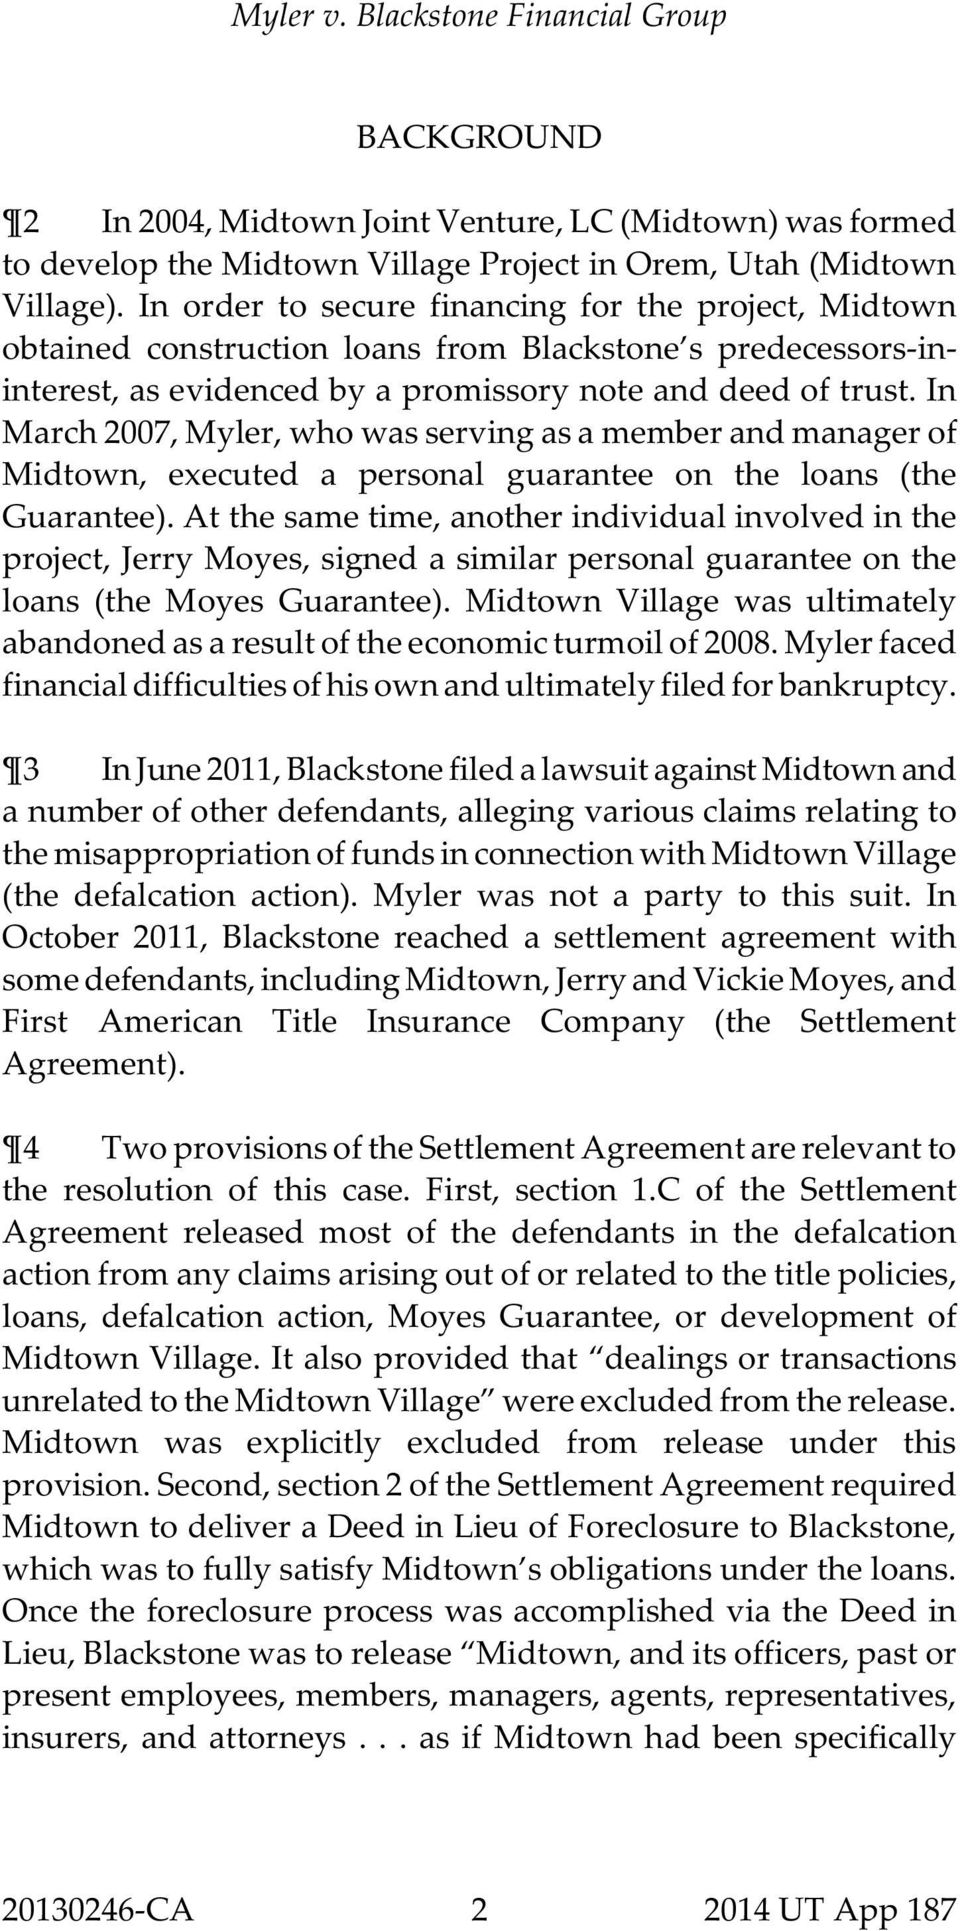 In March 2007, Myler, who was serving as a member and manager of Midtown, executed a personal guarantee on the loans (the Guarantee).